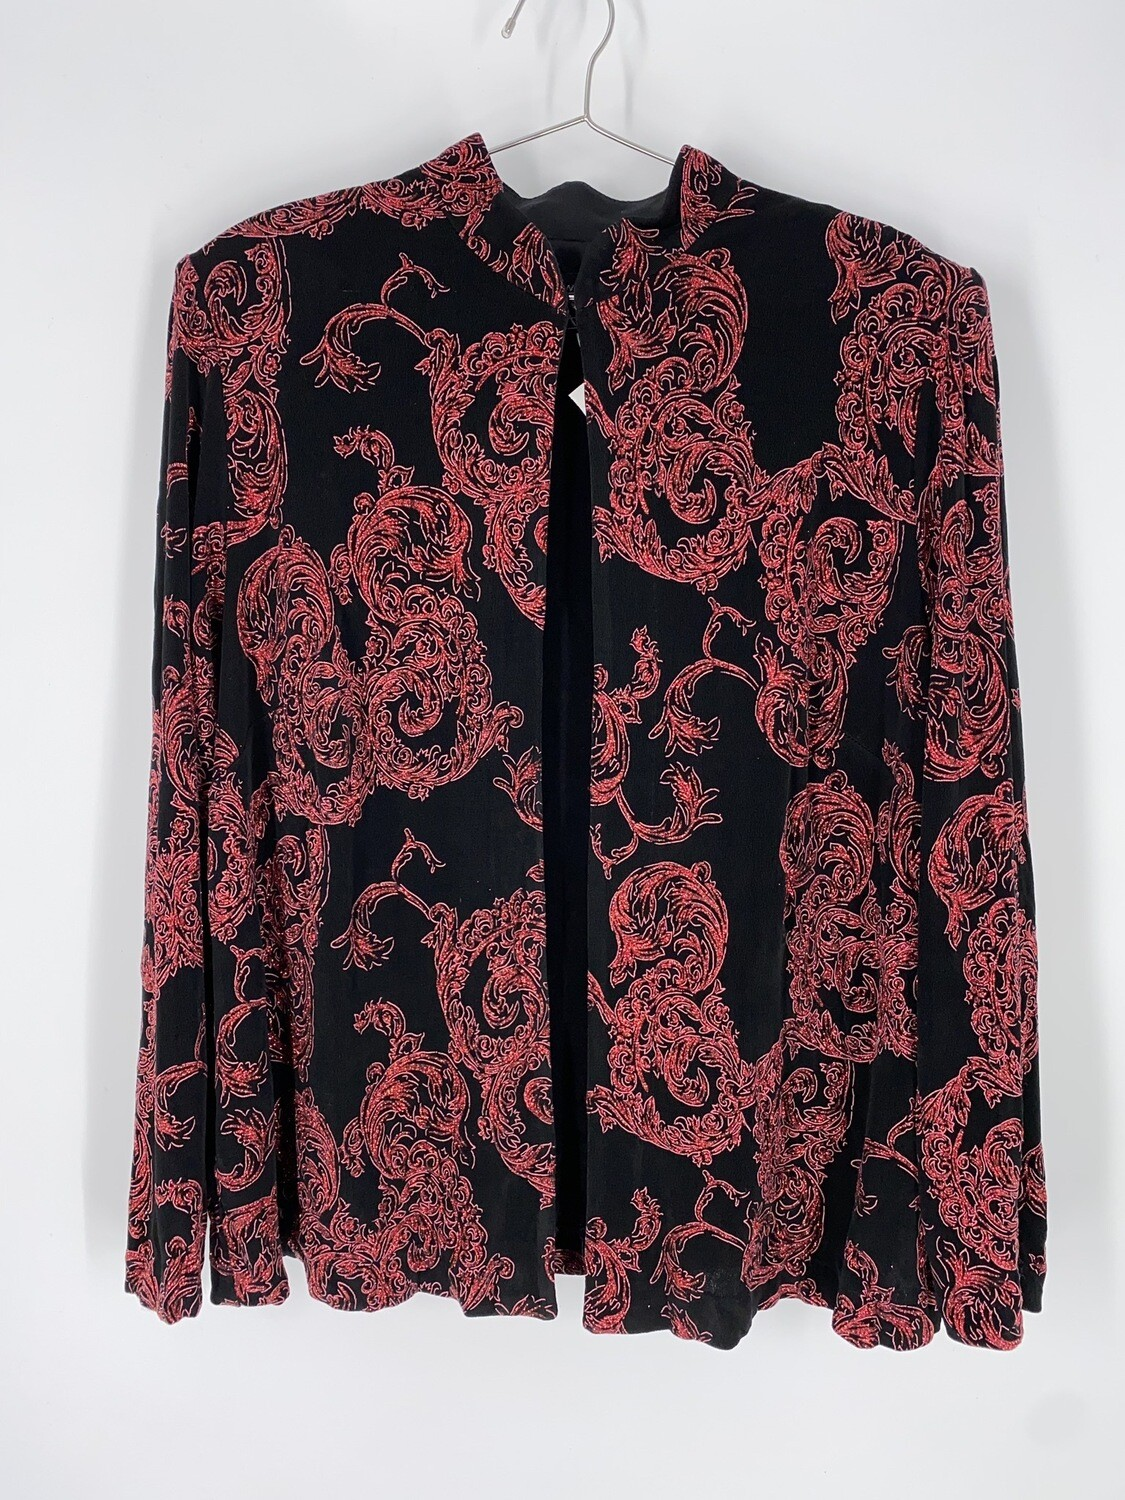 Alex Evenings Black And Red Glitter Long Sleeve Top Size L